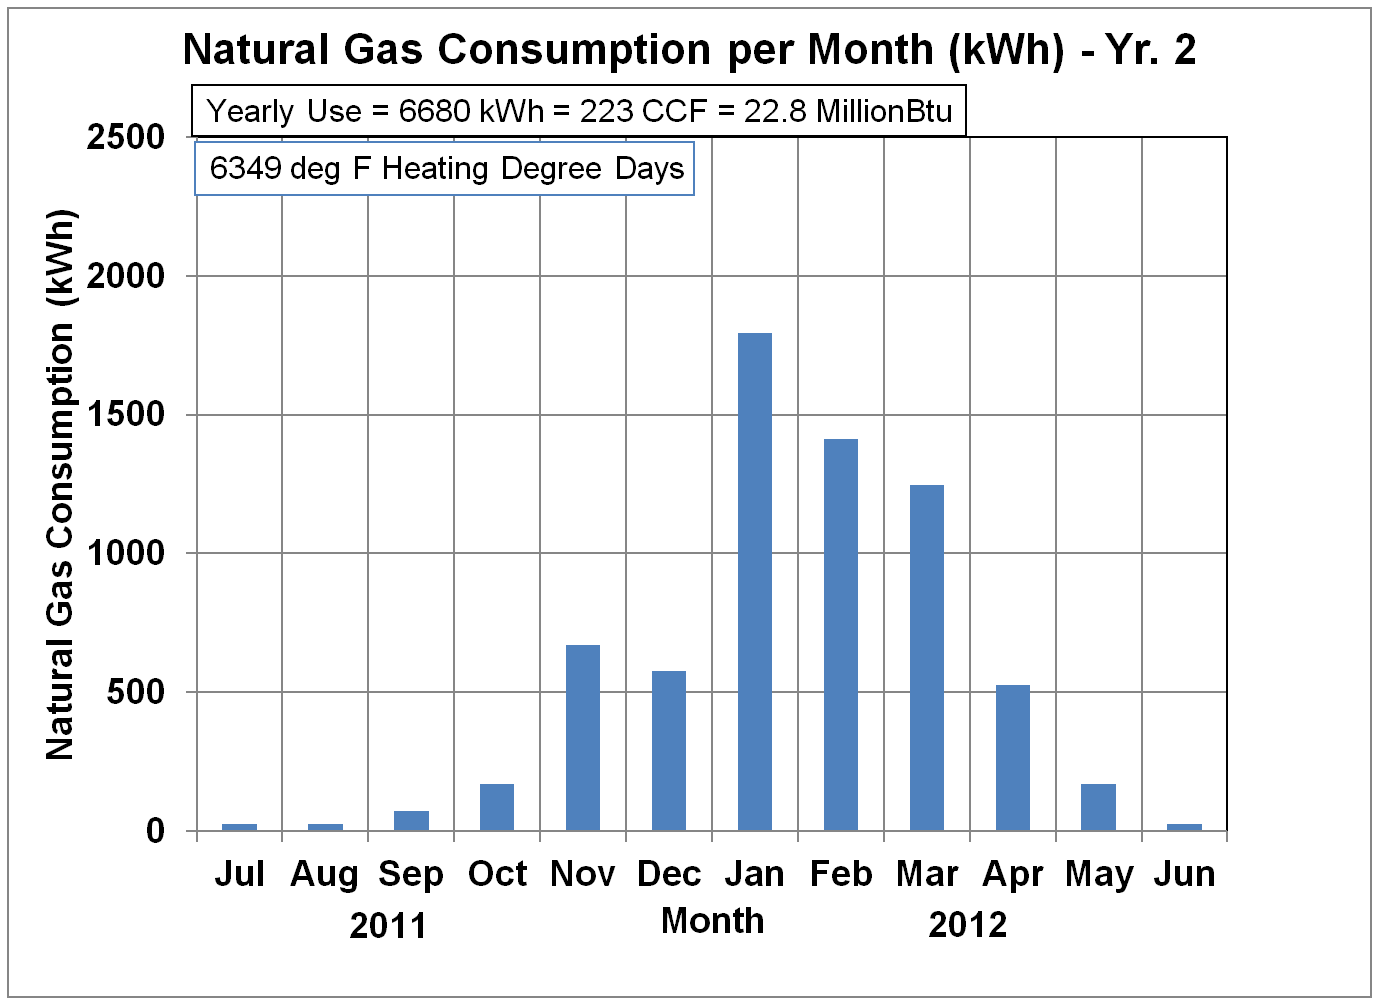 Natural gas usage in kWh - Yr. 2